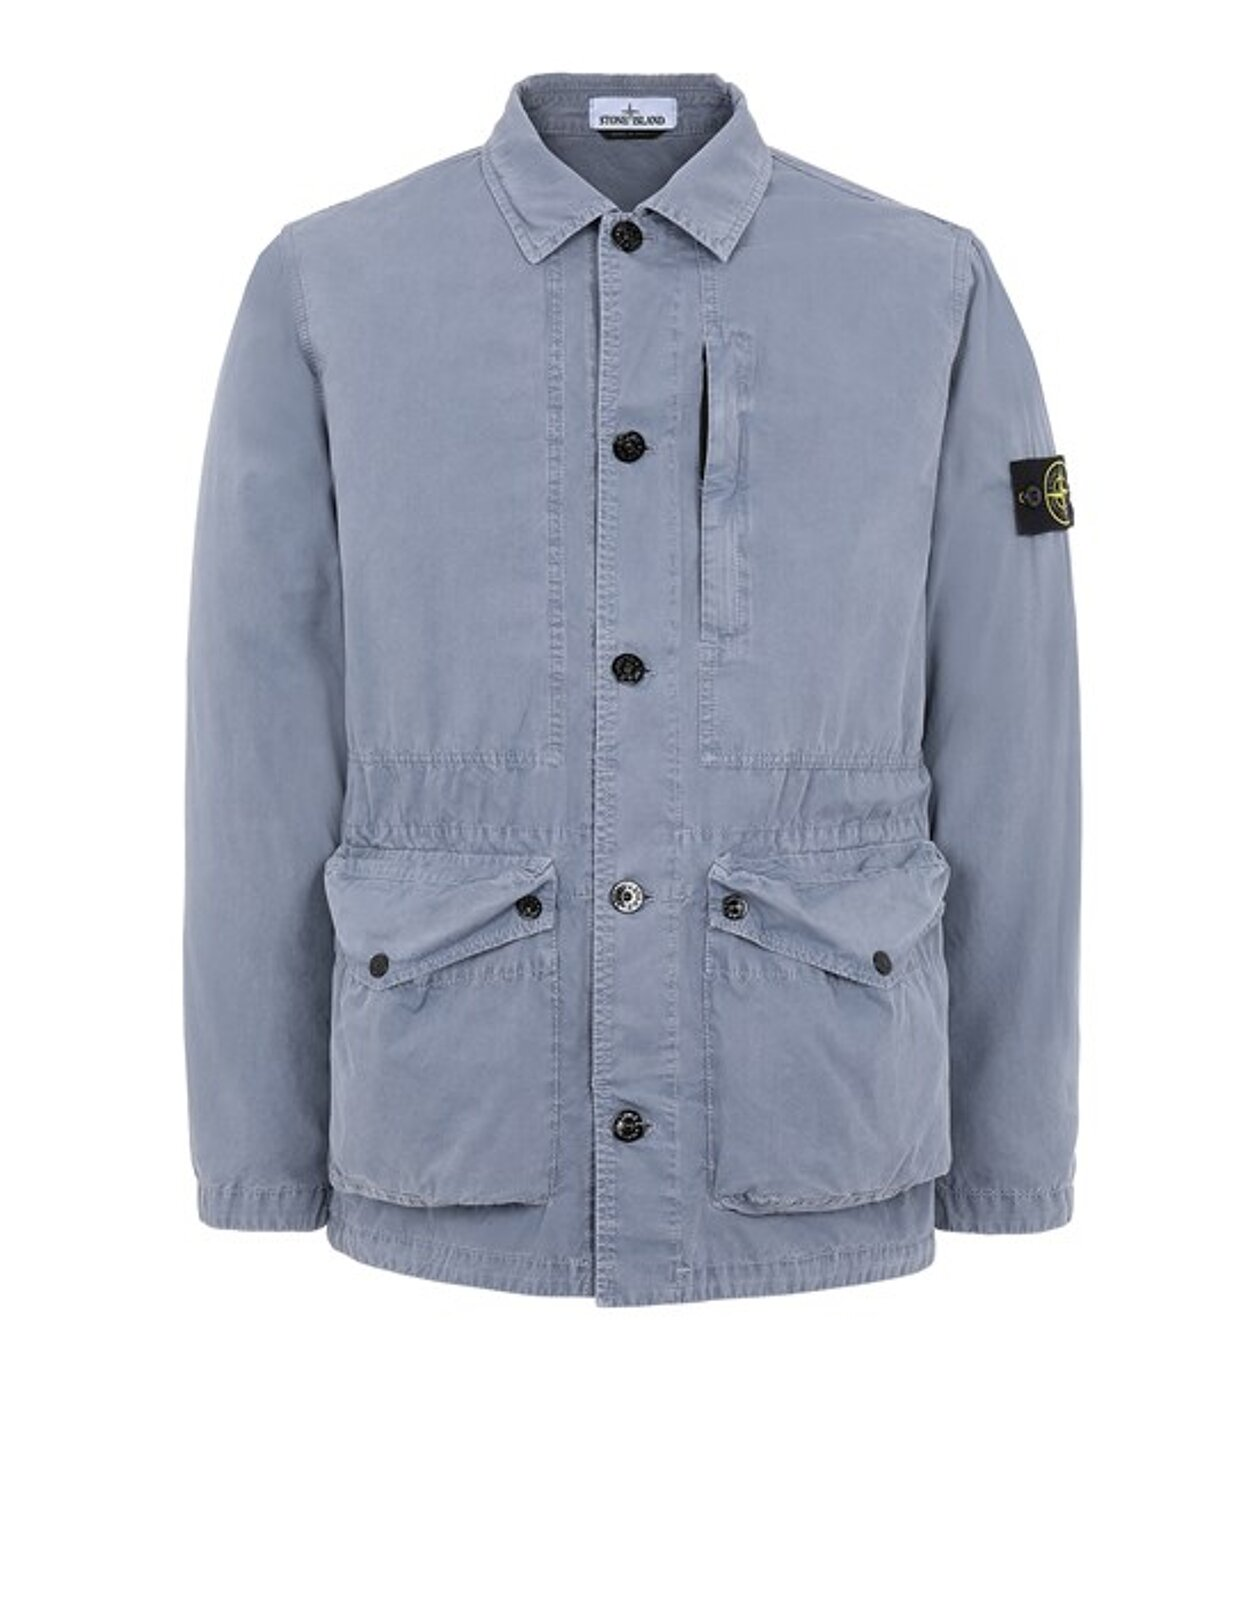 439Wn T.Co Old - Stone Island